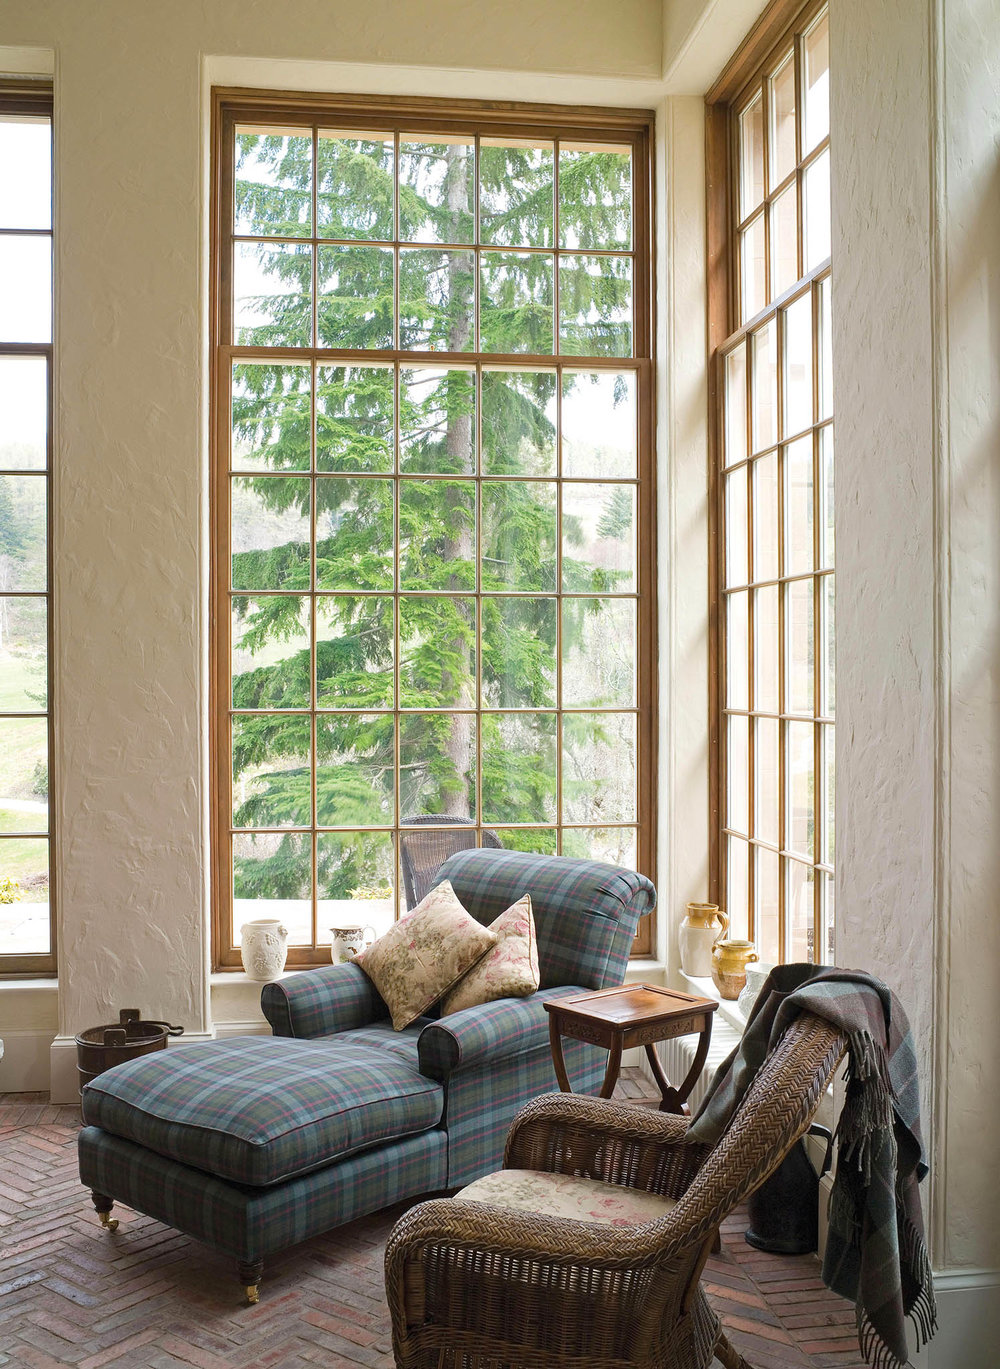 The family tartan gives a casual warmth to this secret garden room.